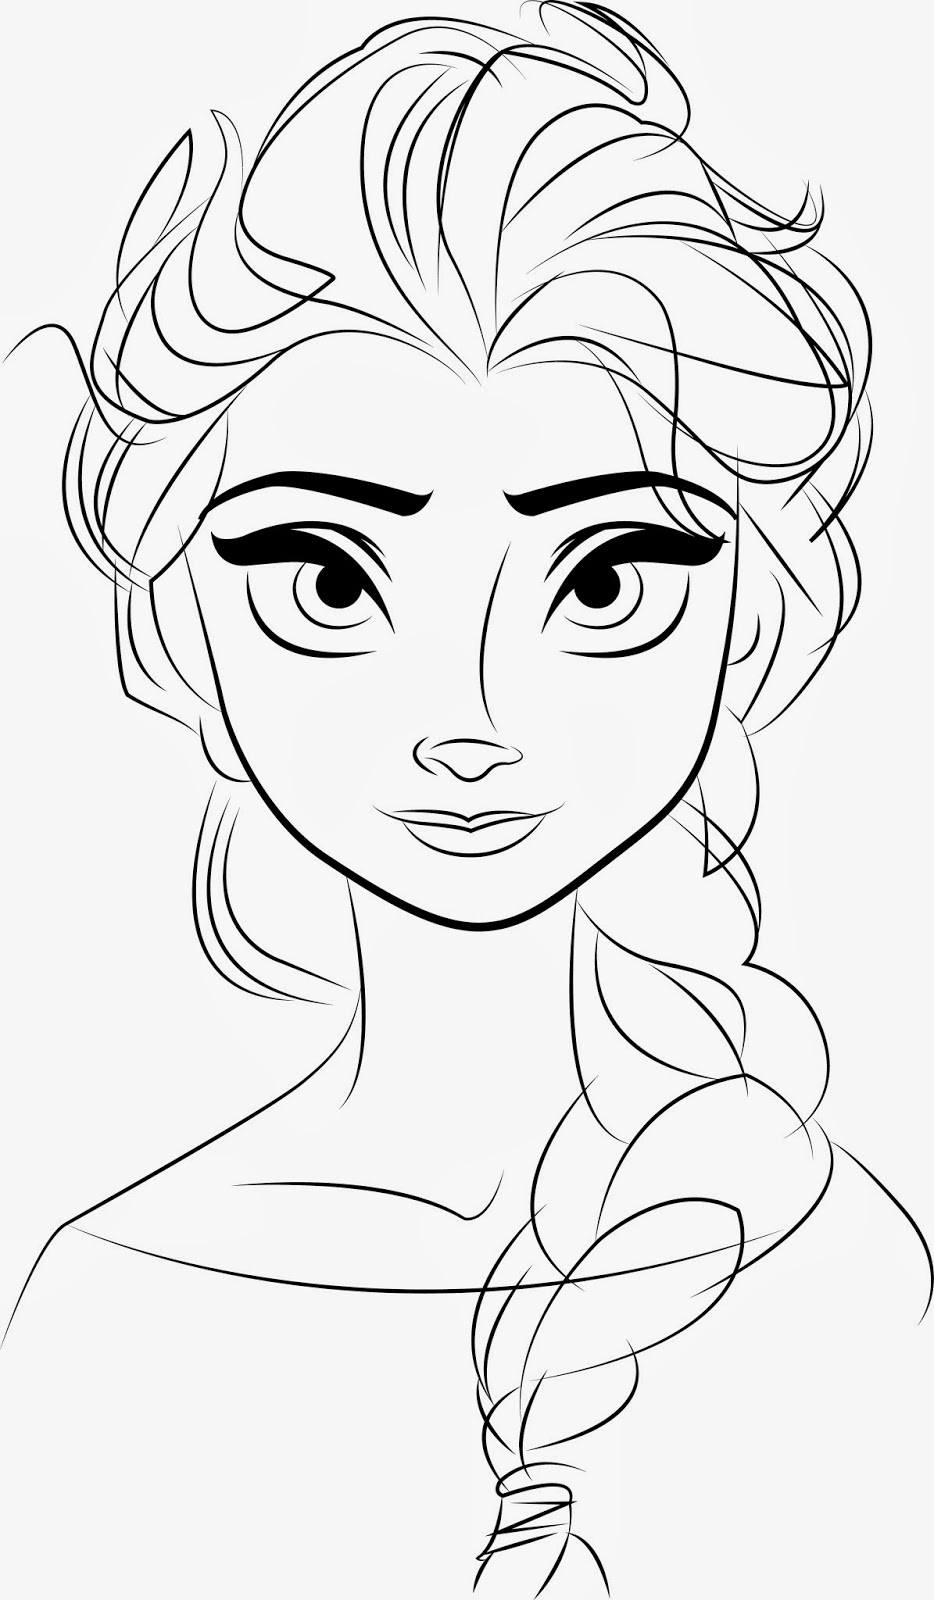 coloring outline pictures free printable elsa coloring pages for kids best coloring outline pictures